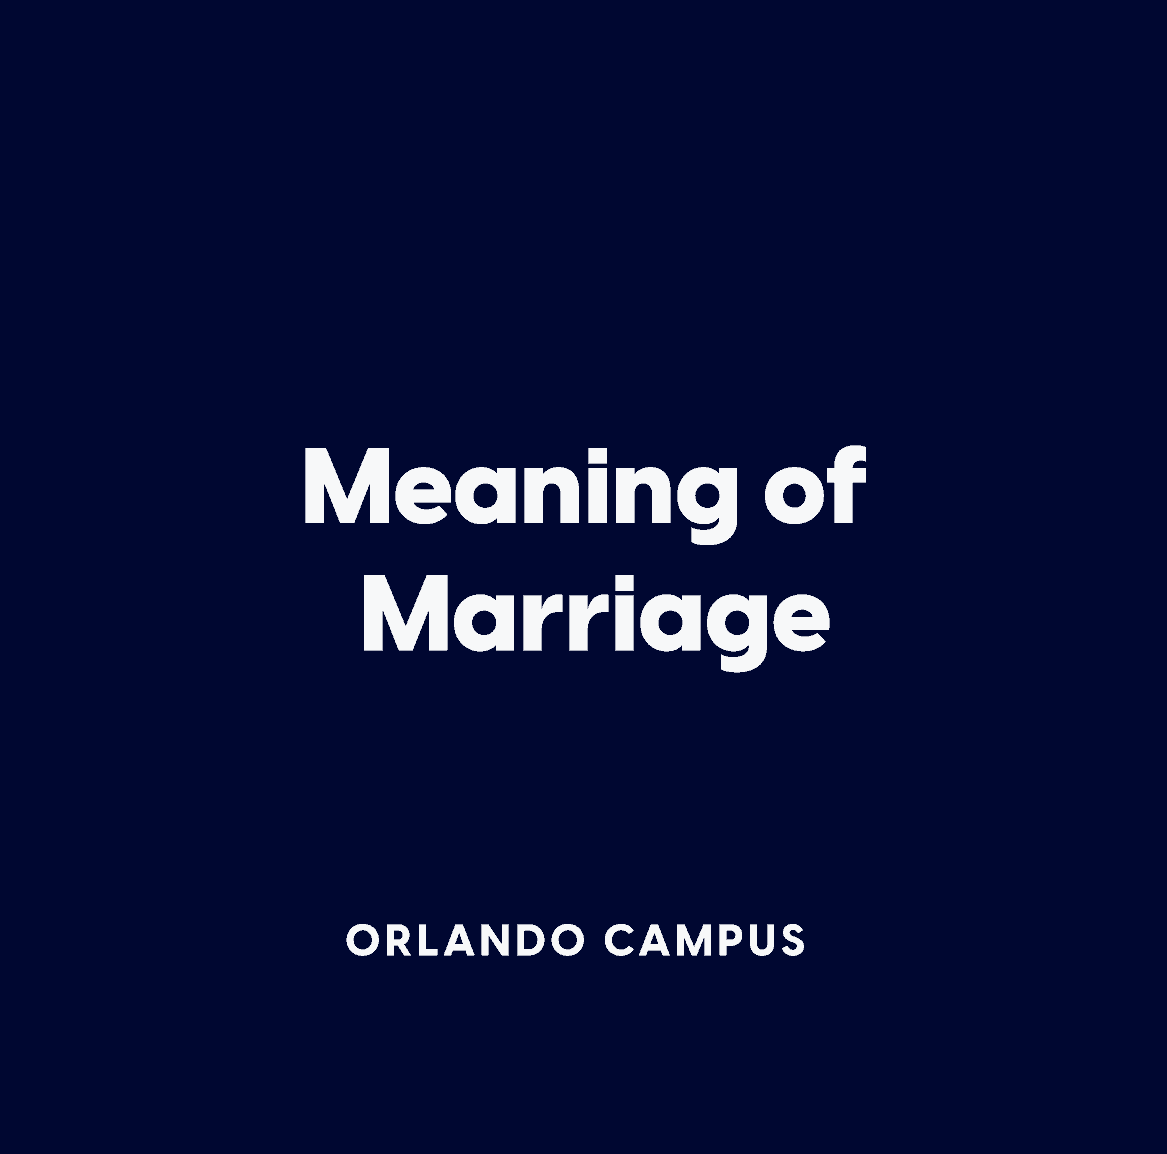 Orlando:  Meaning of Marriage